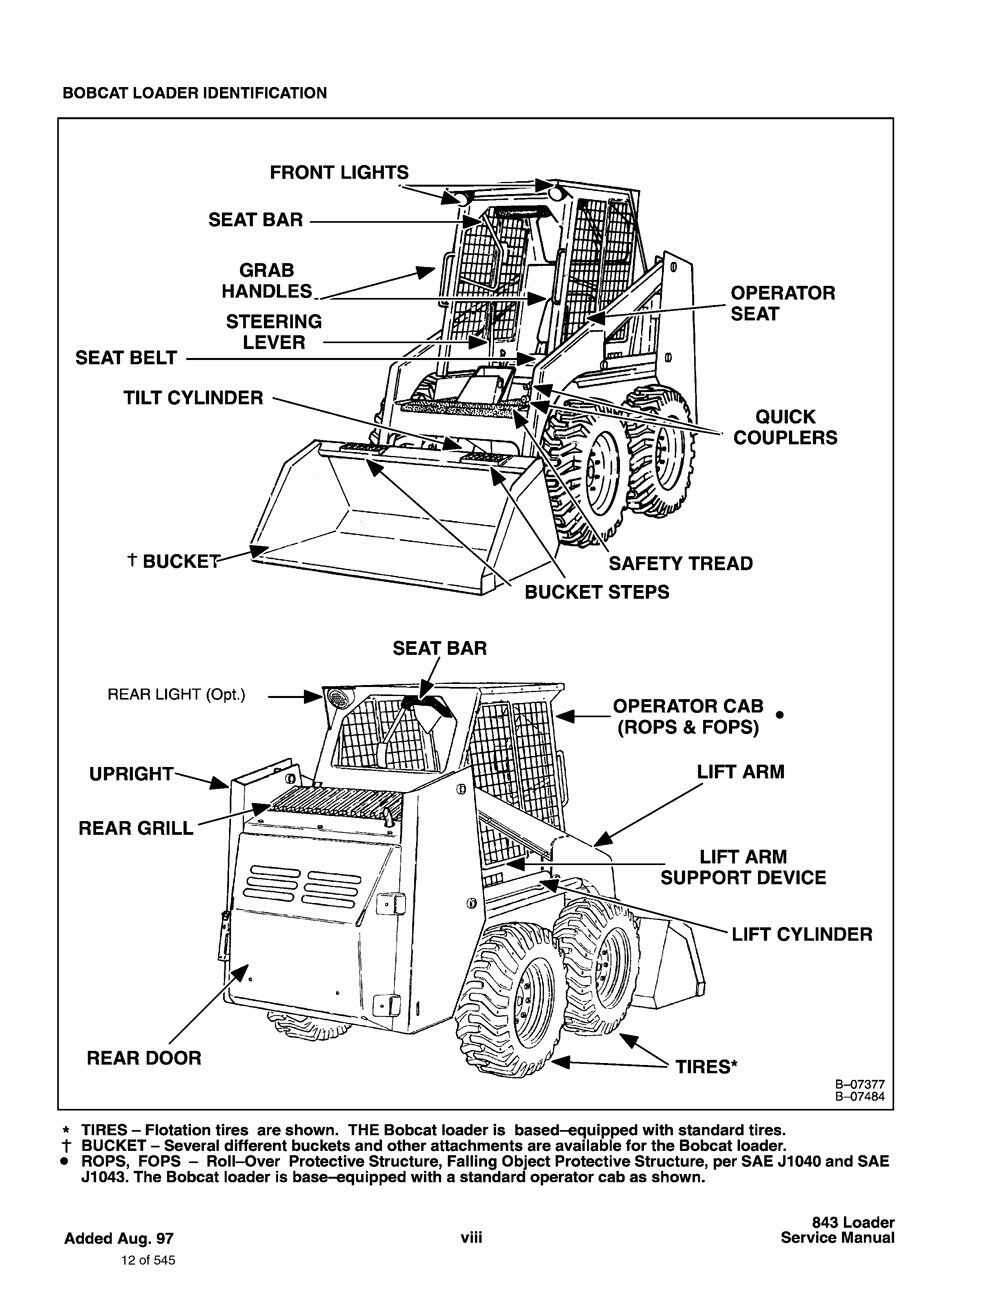 bobcat 843 843b printed bound skid steer repair service manual 1985 rh ebay com Bobcat 753 Hydraulic Diagram Bobcat 753 Hydraulic Diagram